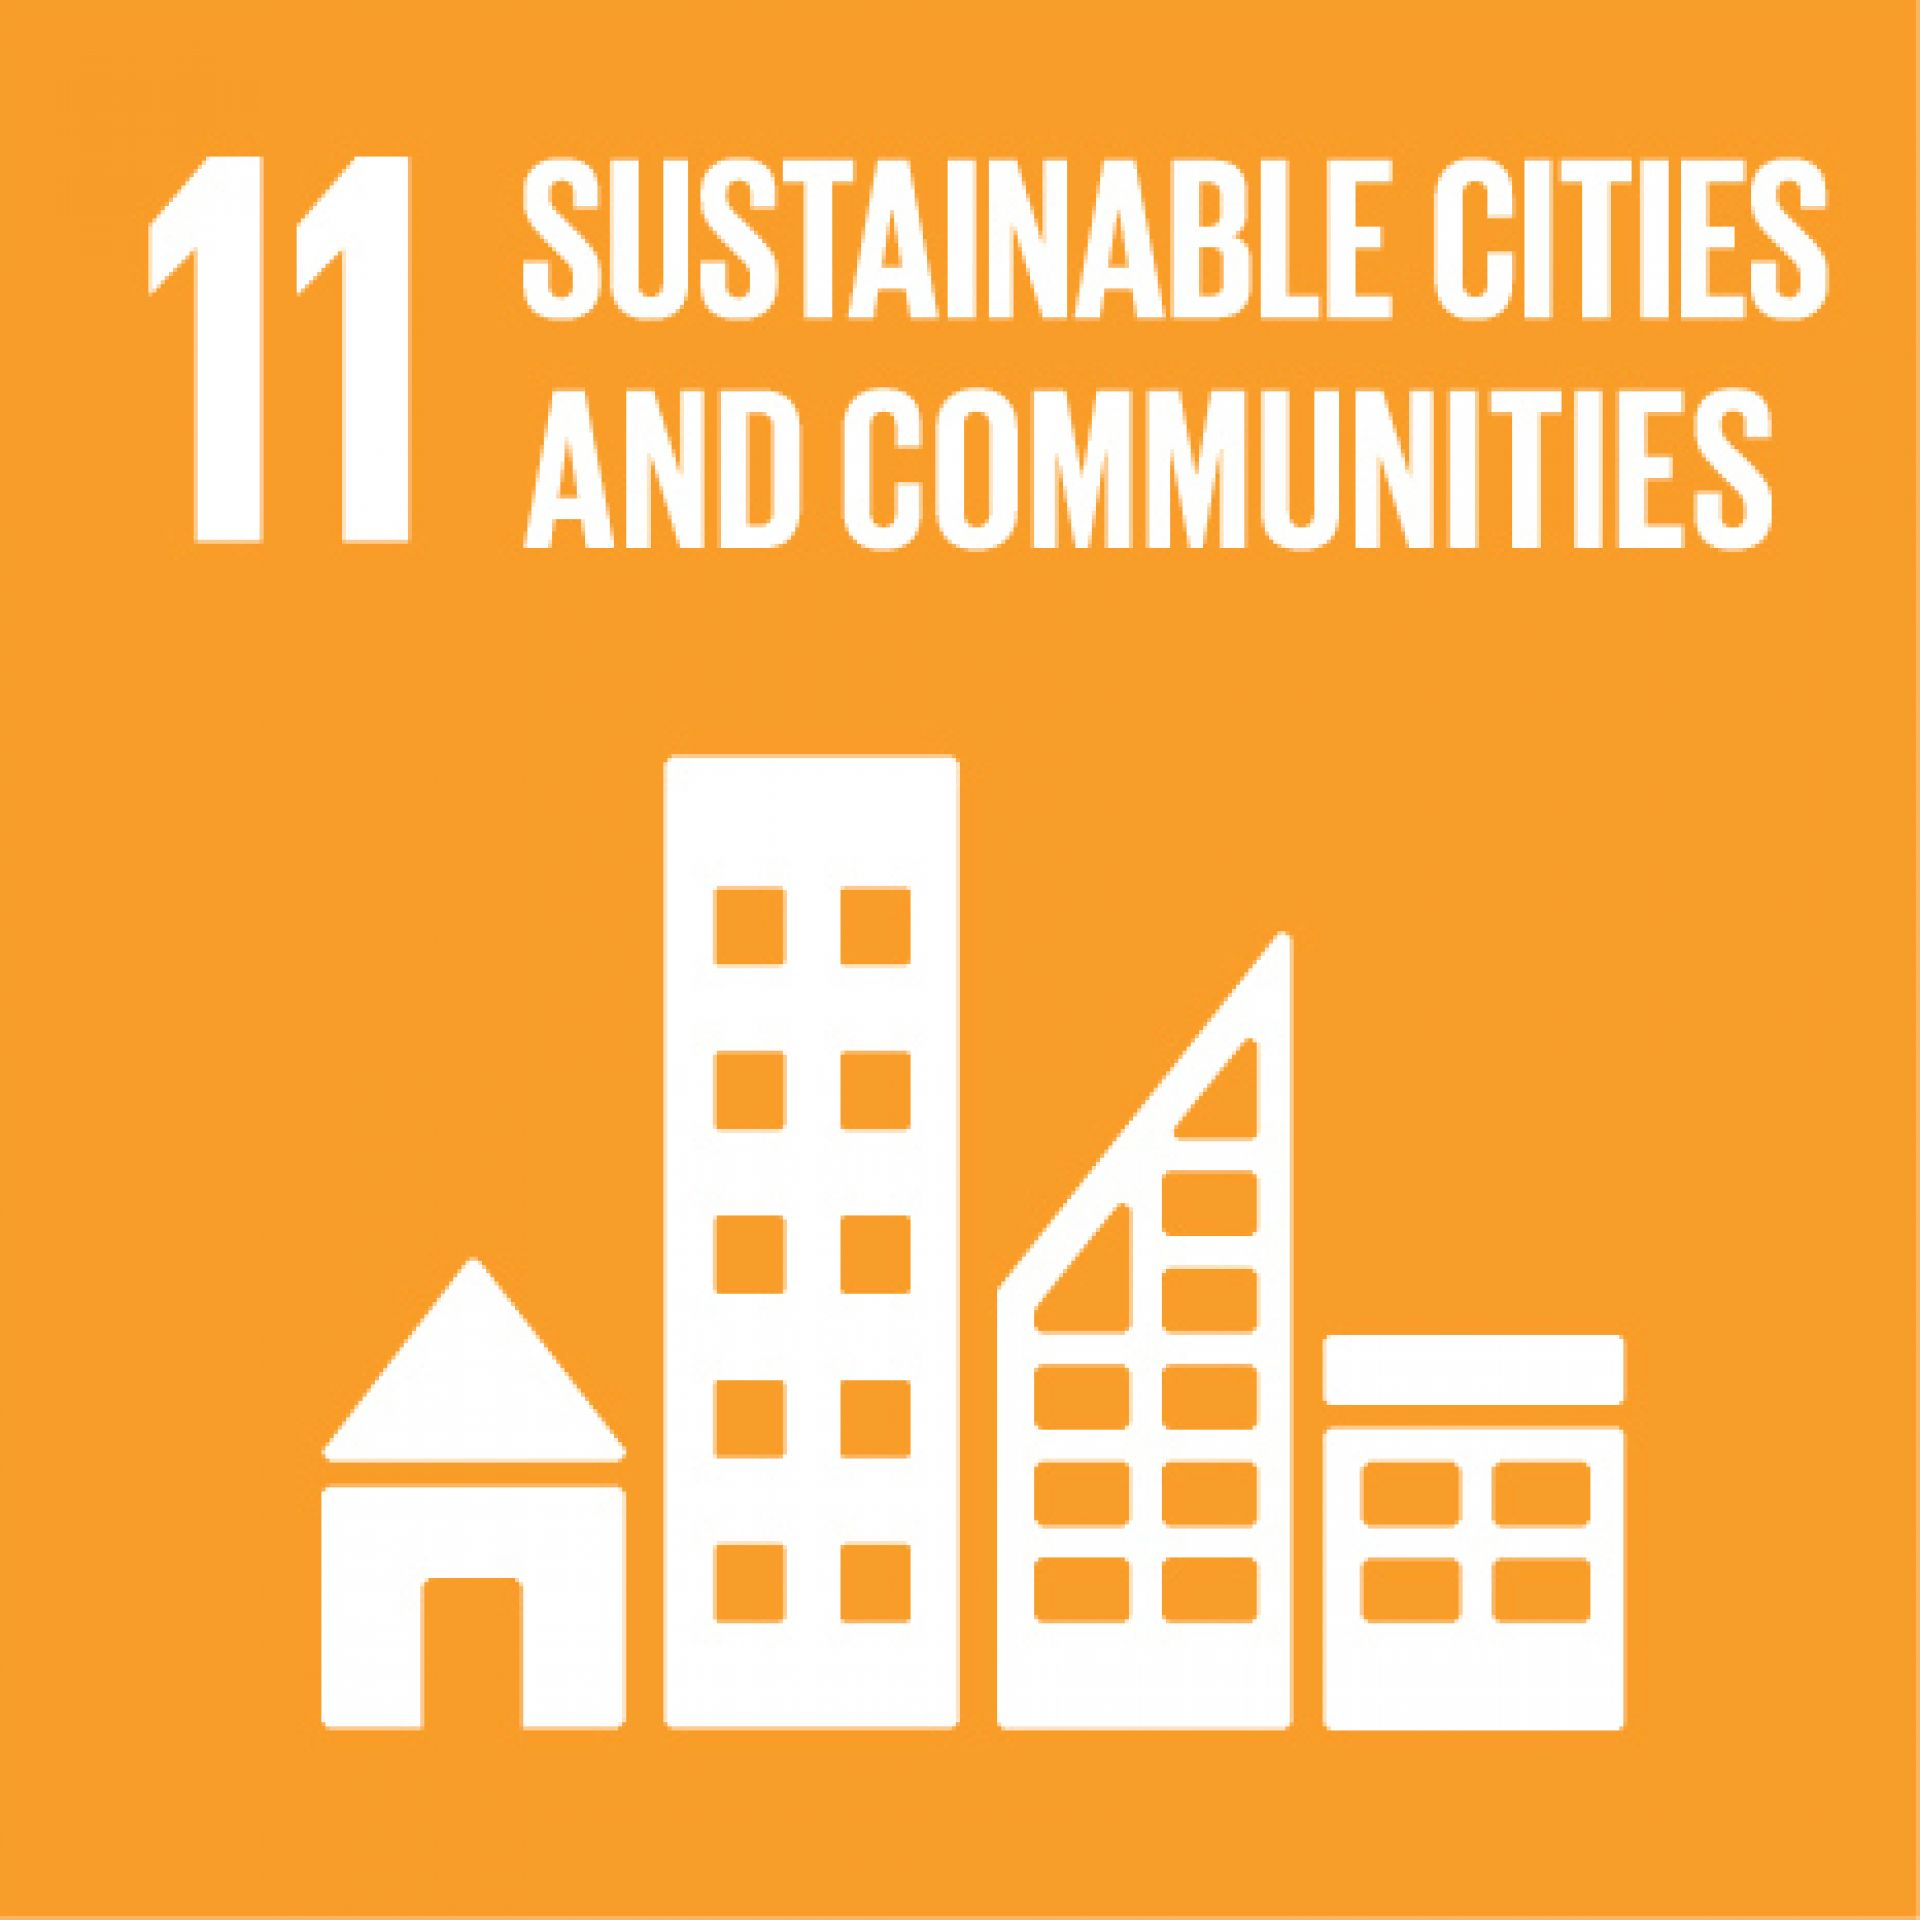 The United Nations Sustainable Development Goal 11 is to make cities and communities sustainable, safe, inclusive and resilient places.50% of the world's population now live in cities and urban spaces, and that figure is only set to rise. Furthermore, given that many events take place in cities, as an industry we are in a great position to help achieve this goal. -